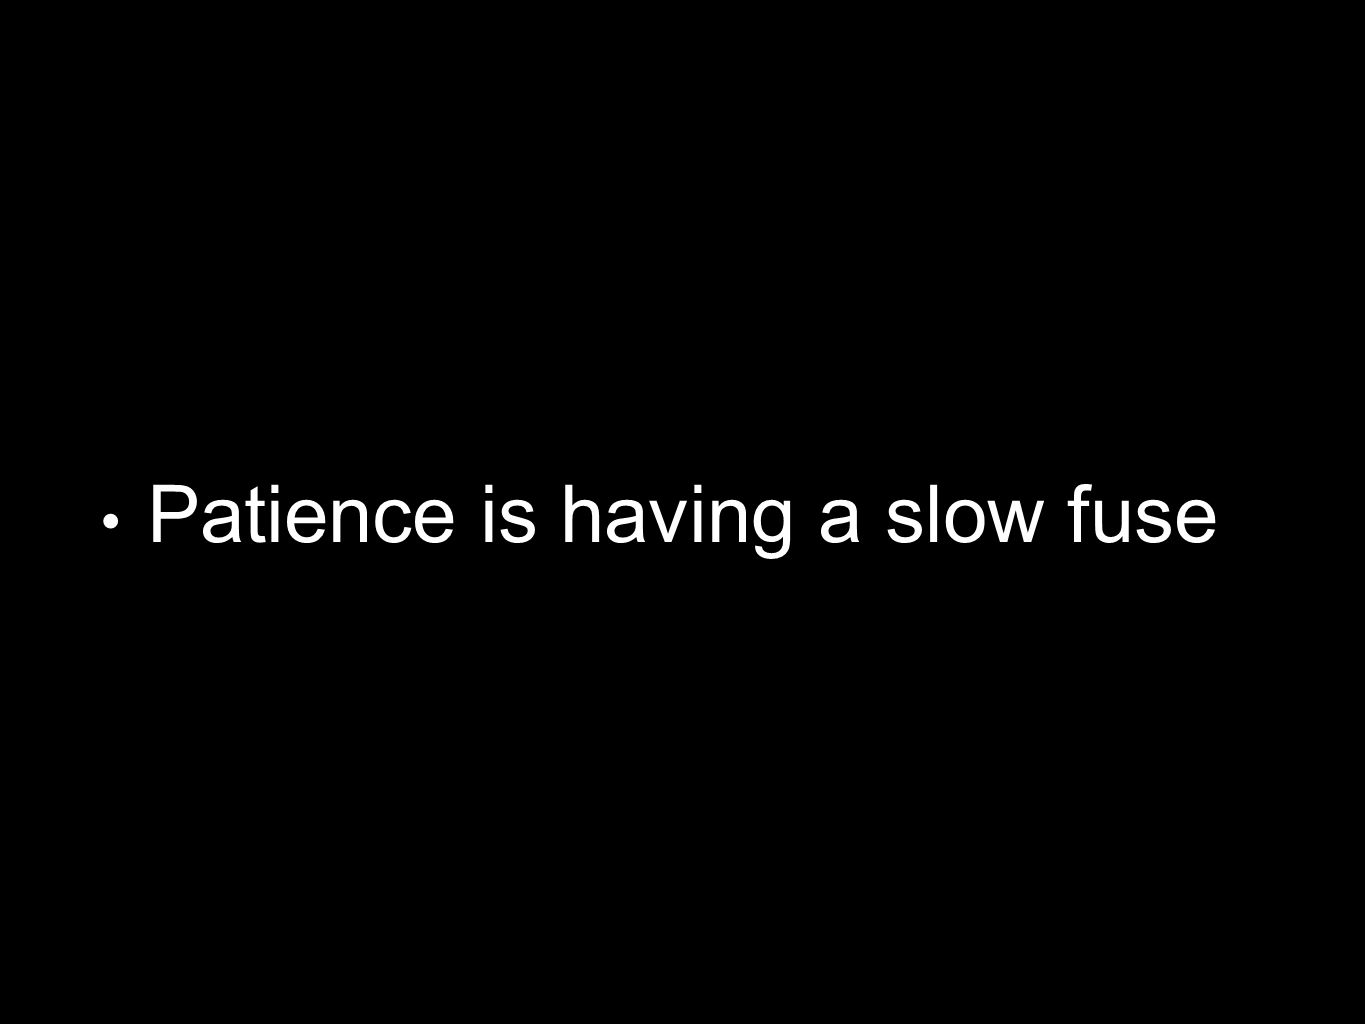 Patience is the quality that enables someone to remain steadfast under strain & keep pressing on